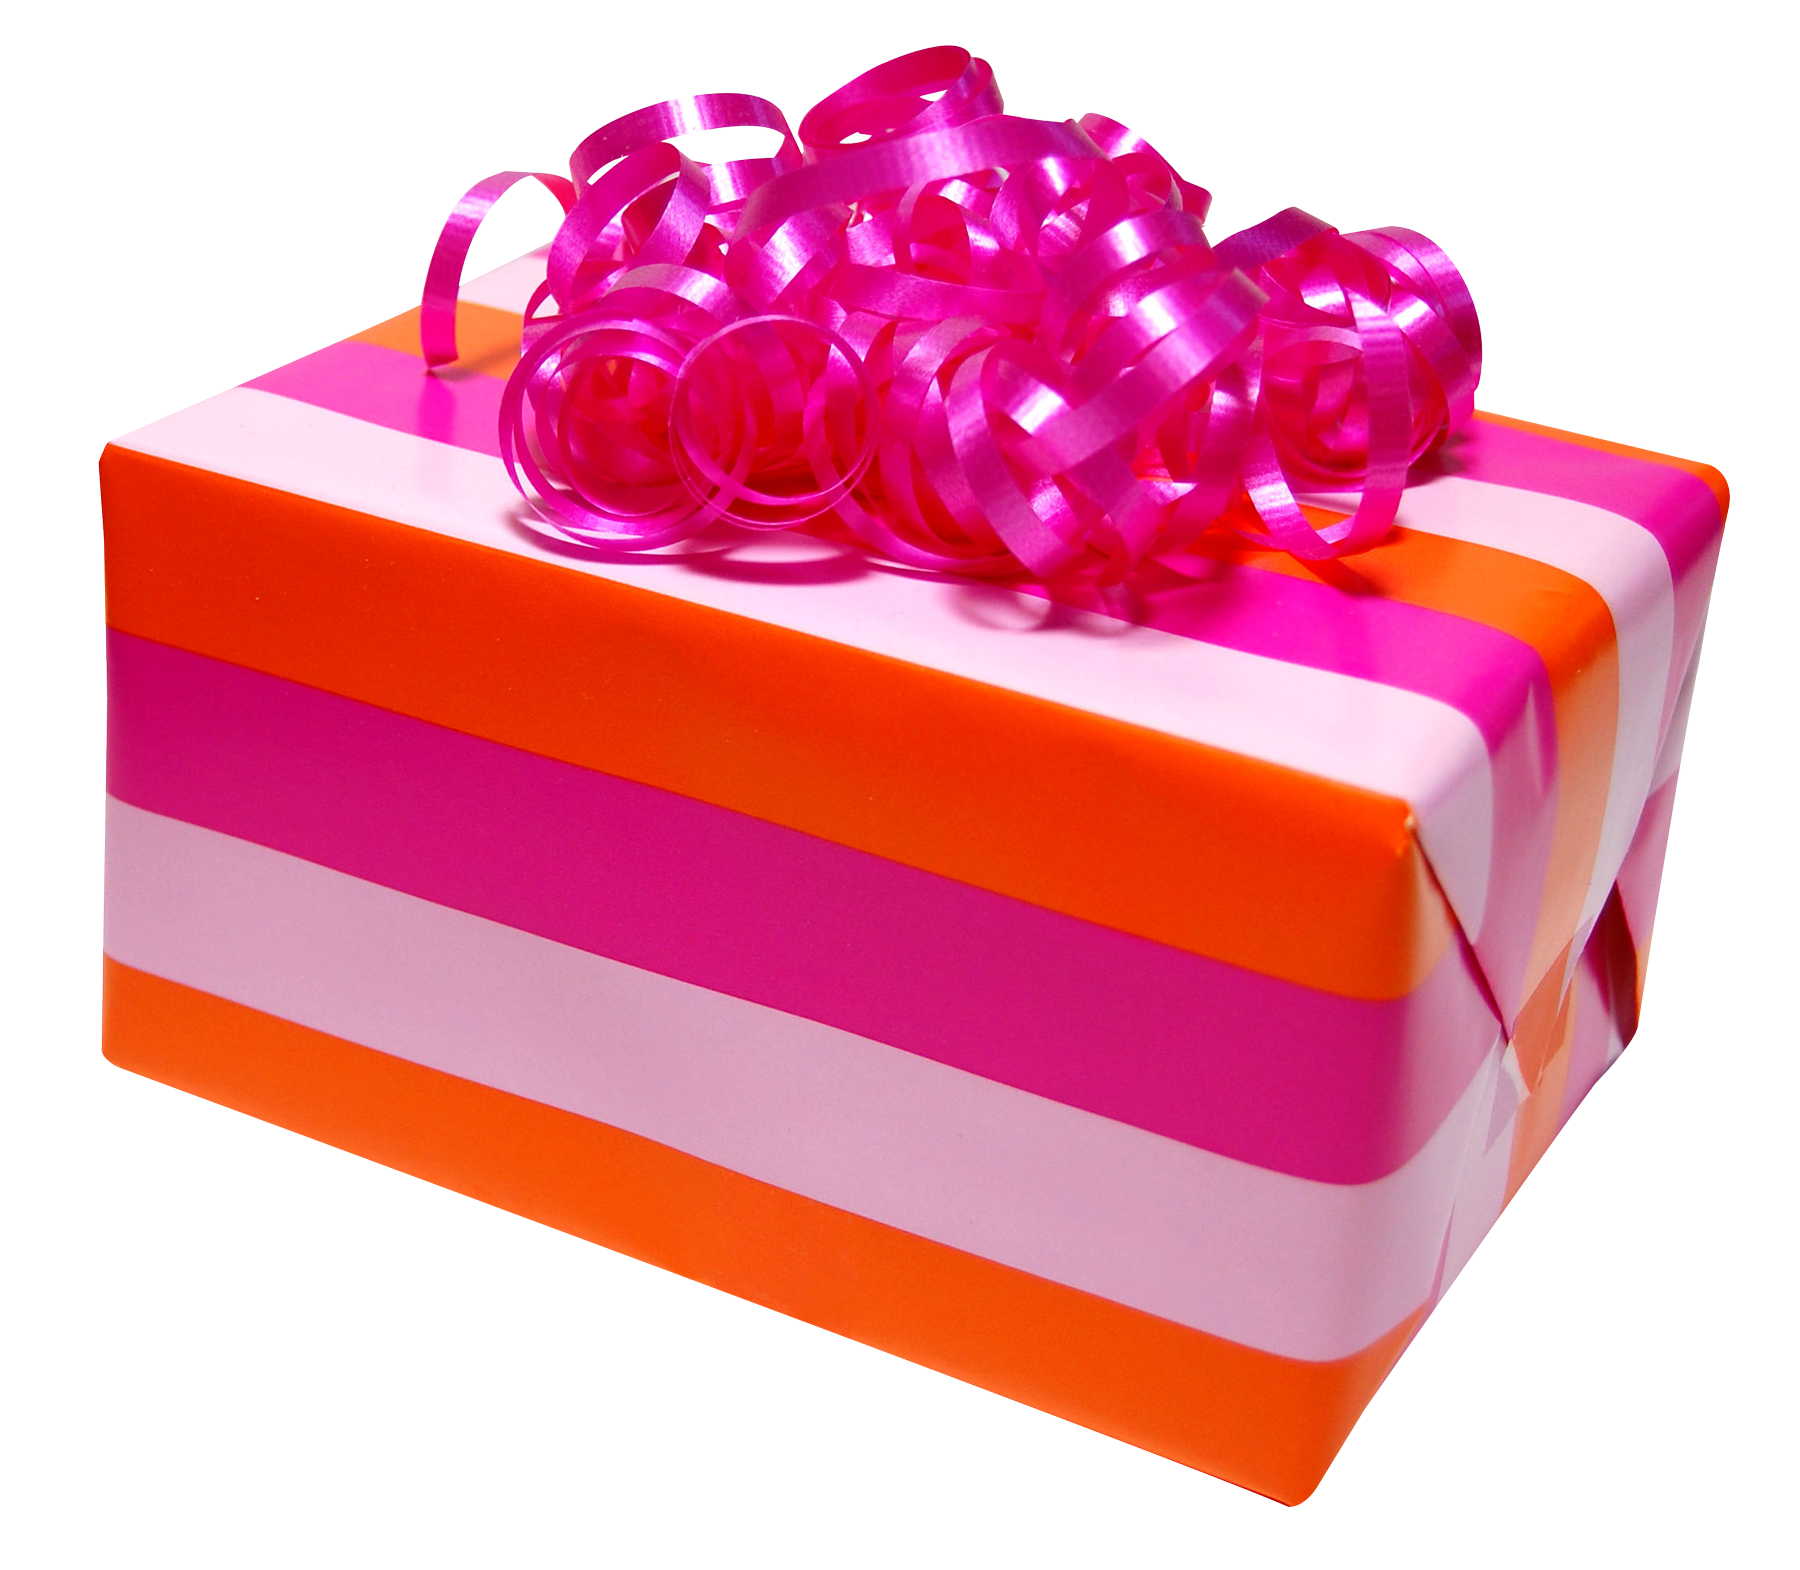 Gift Png Images Pngpix